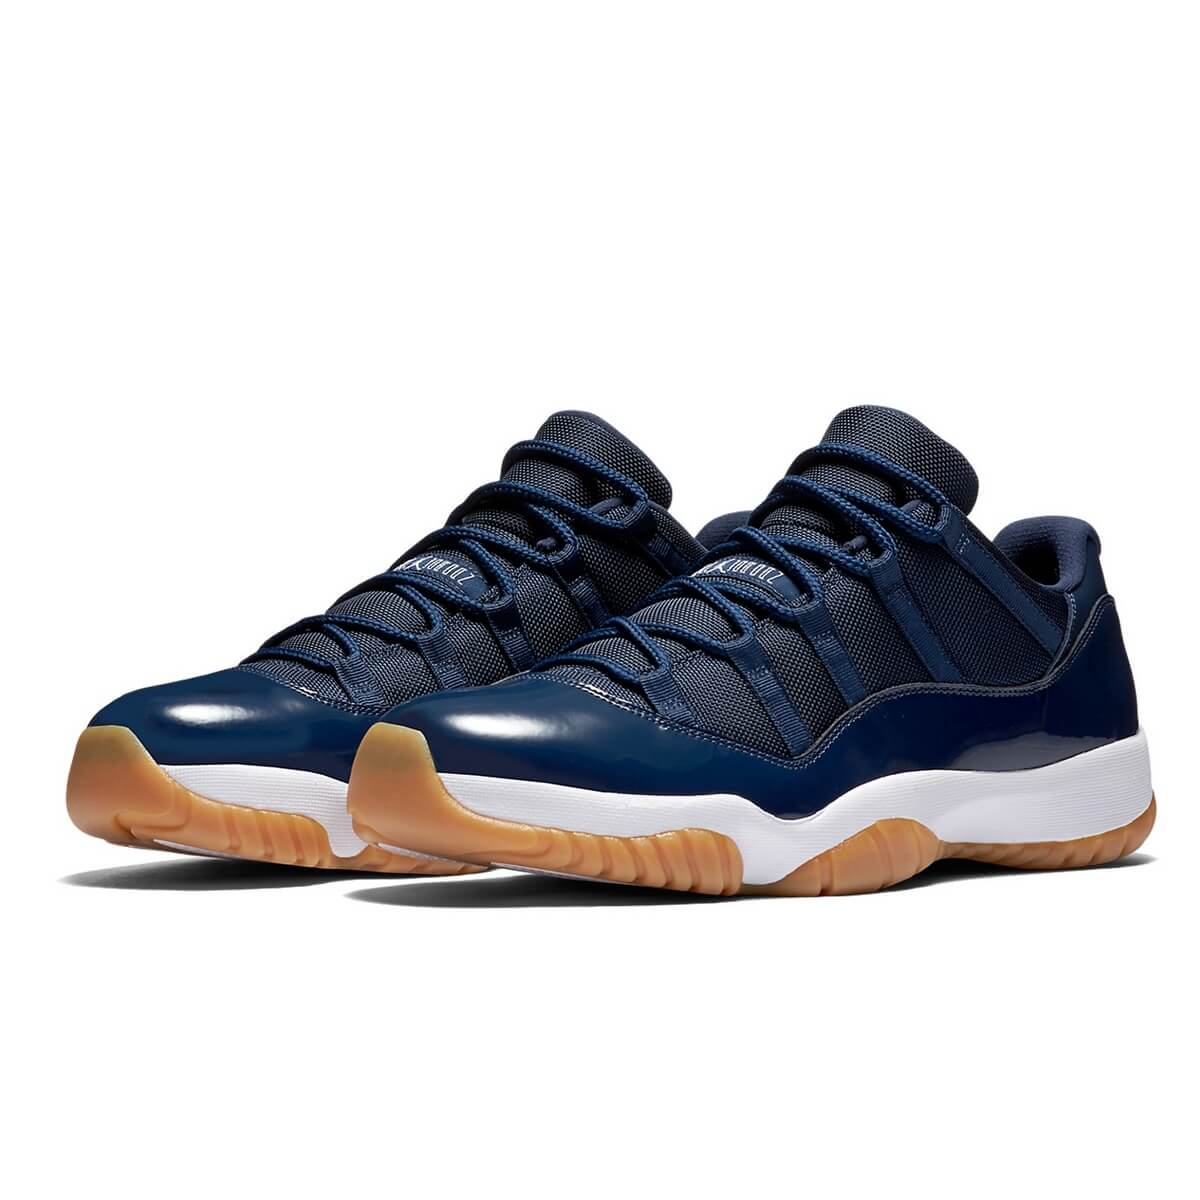 Nike Air Jordan 11 Retro Low Midnight Navy White Gum Light Brown 528895-405 f0052508c